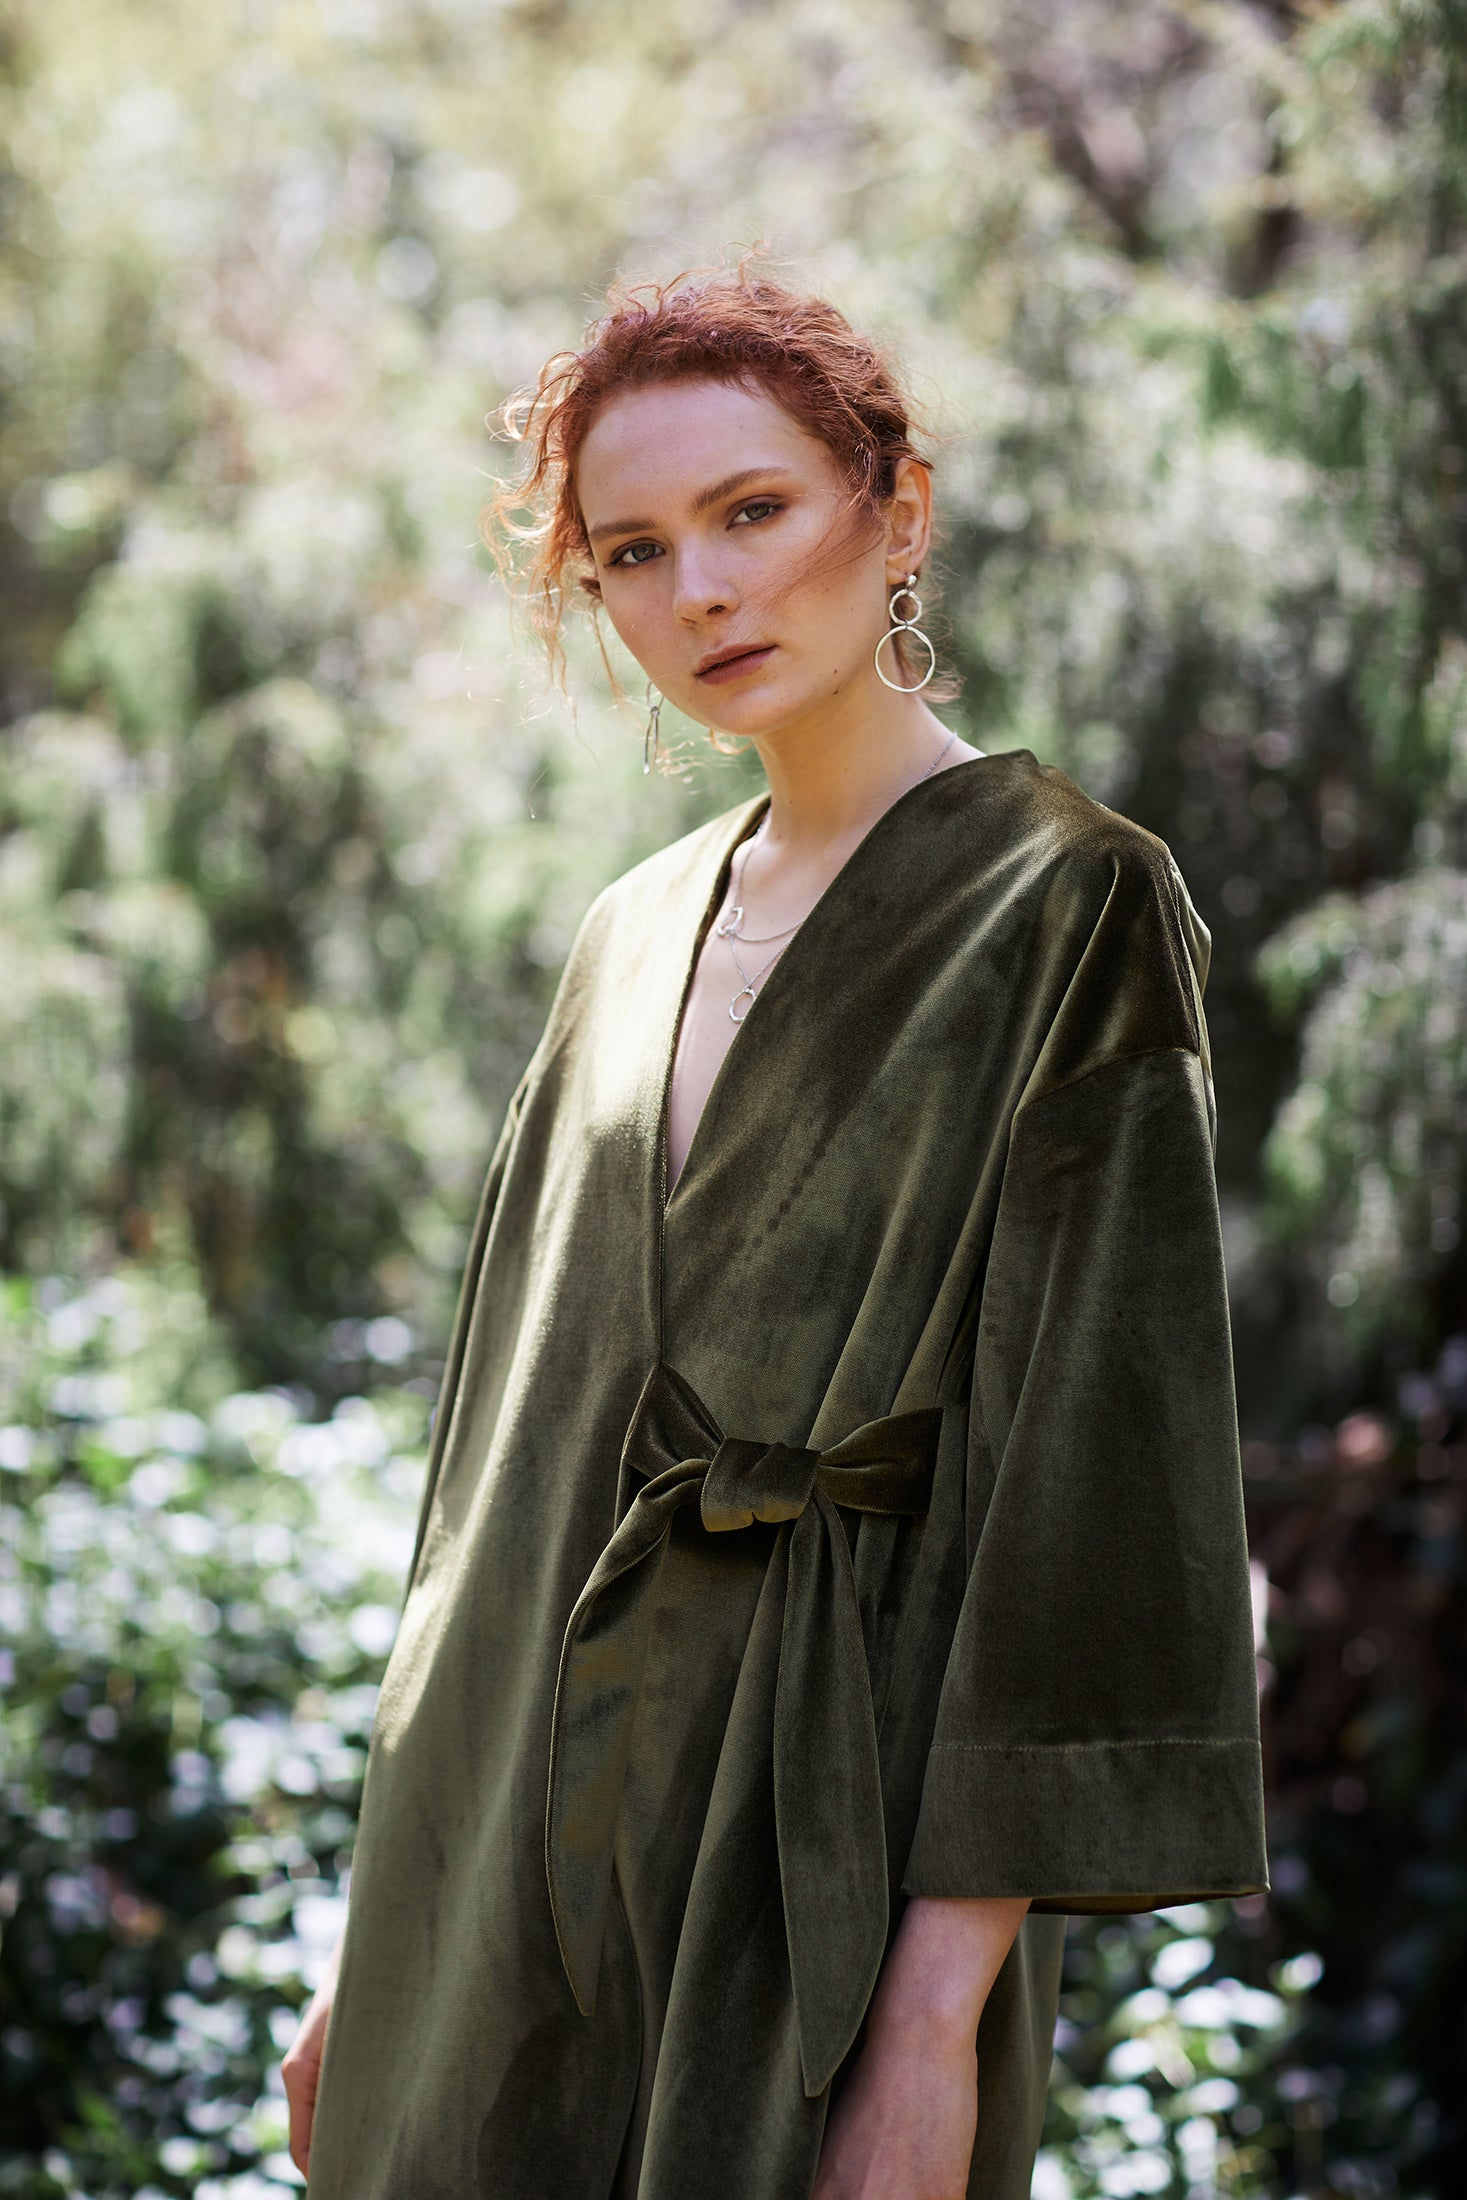 keegan AW19 Woodland Campaign Ethical Fashion Made in Melbourne Australia Green Velvet Jacket Bushland